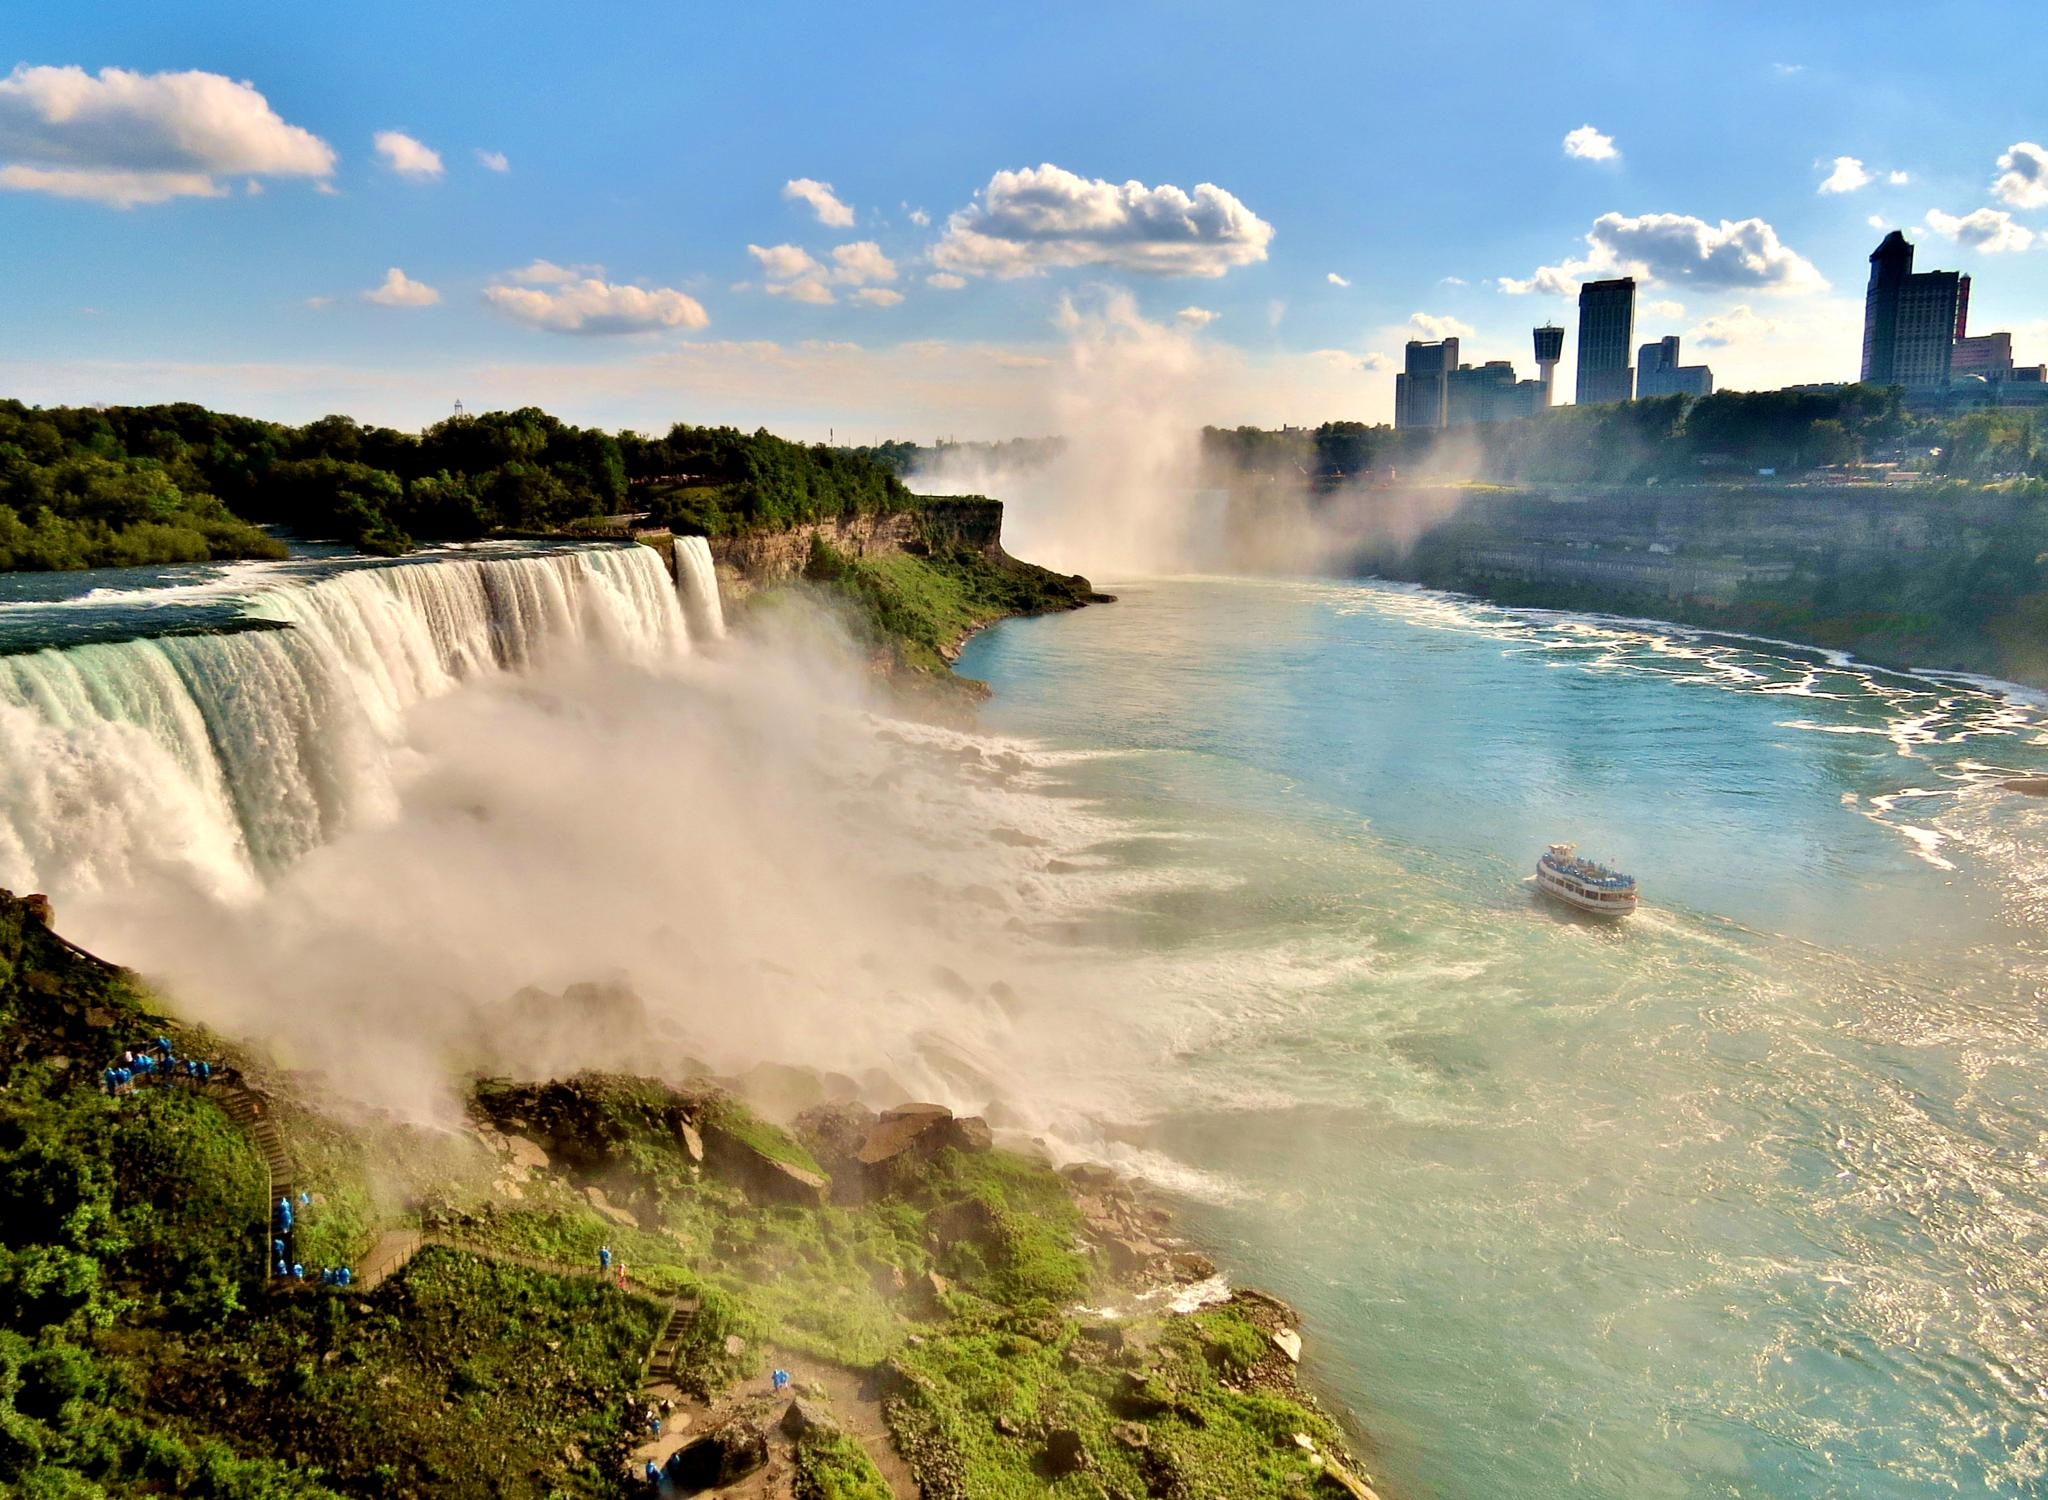 Niagara during late evening by Star Hunter